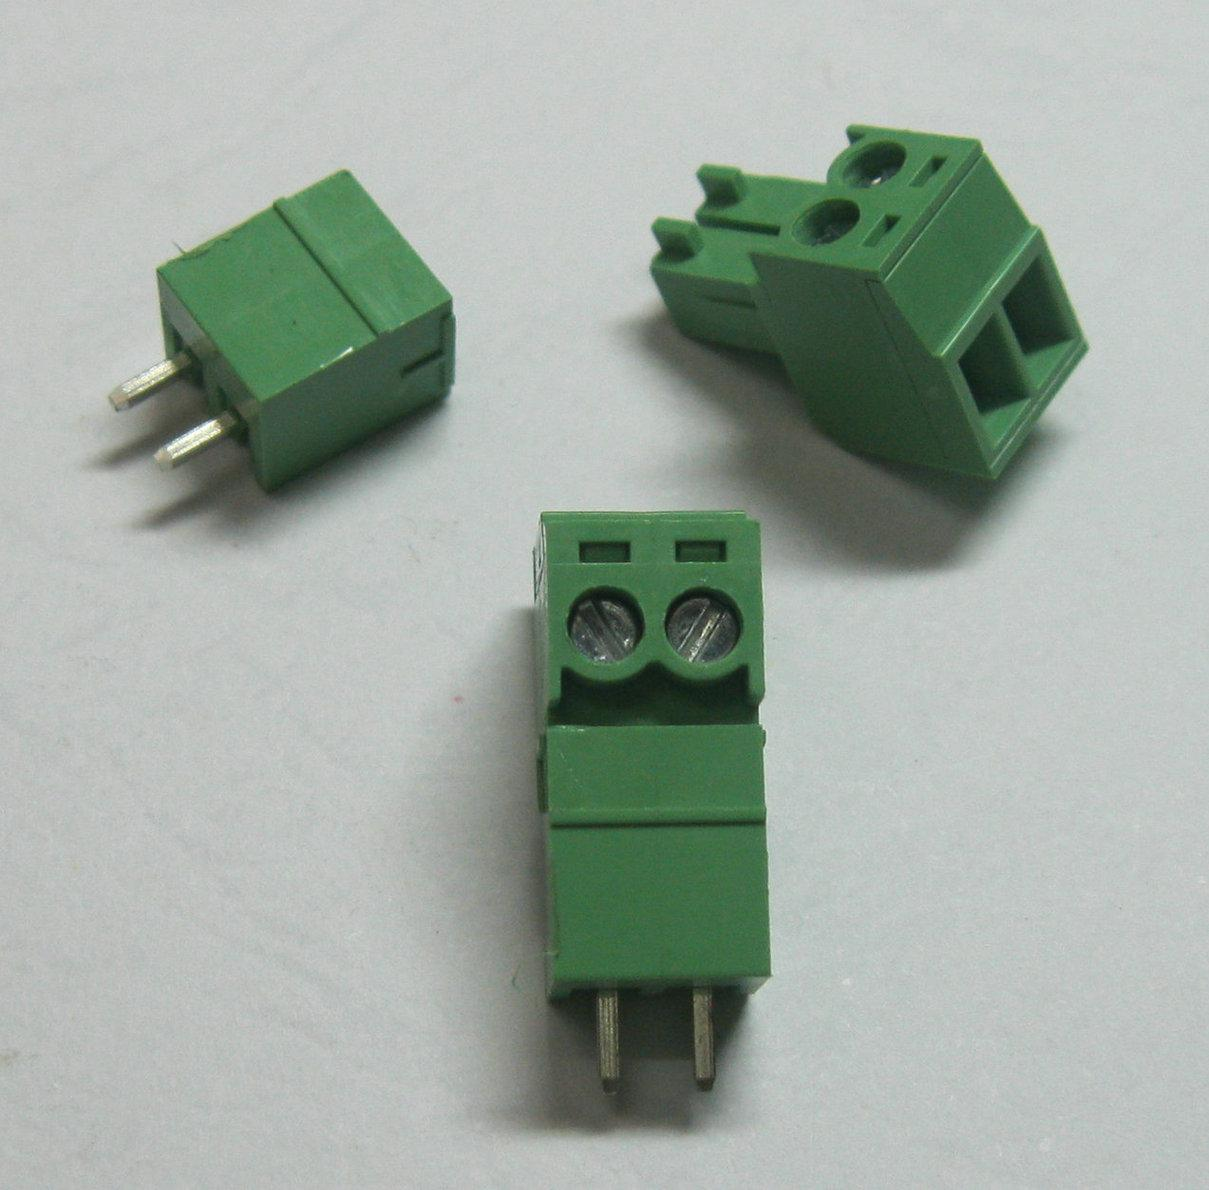 120 Pcs Green 2pin 3.5mm Screw Terminal Block Connector Pluggable Type High Quality HOT Sale